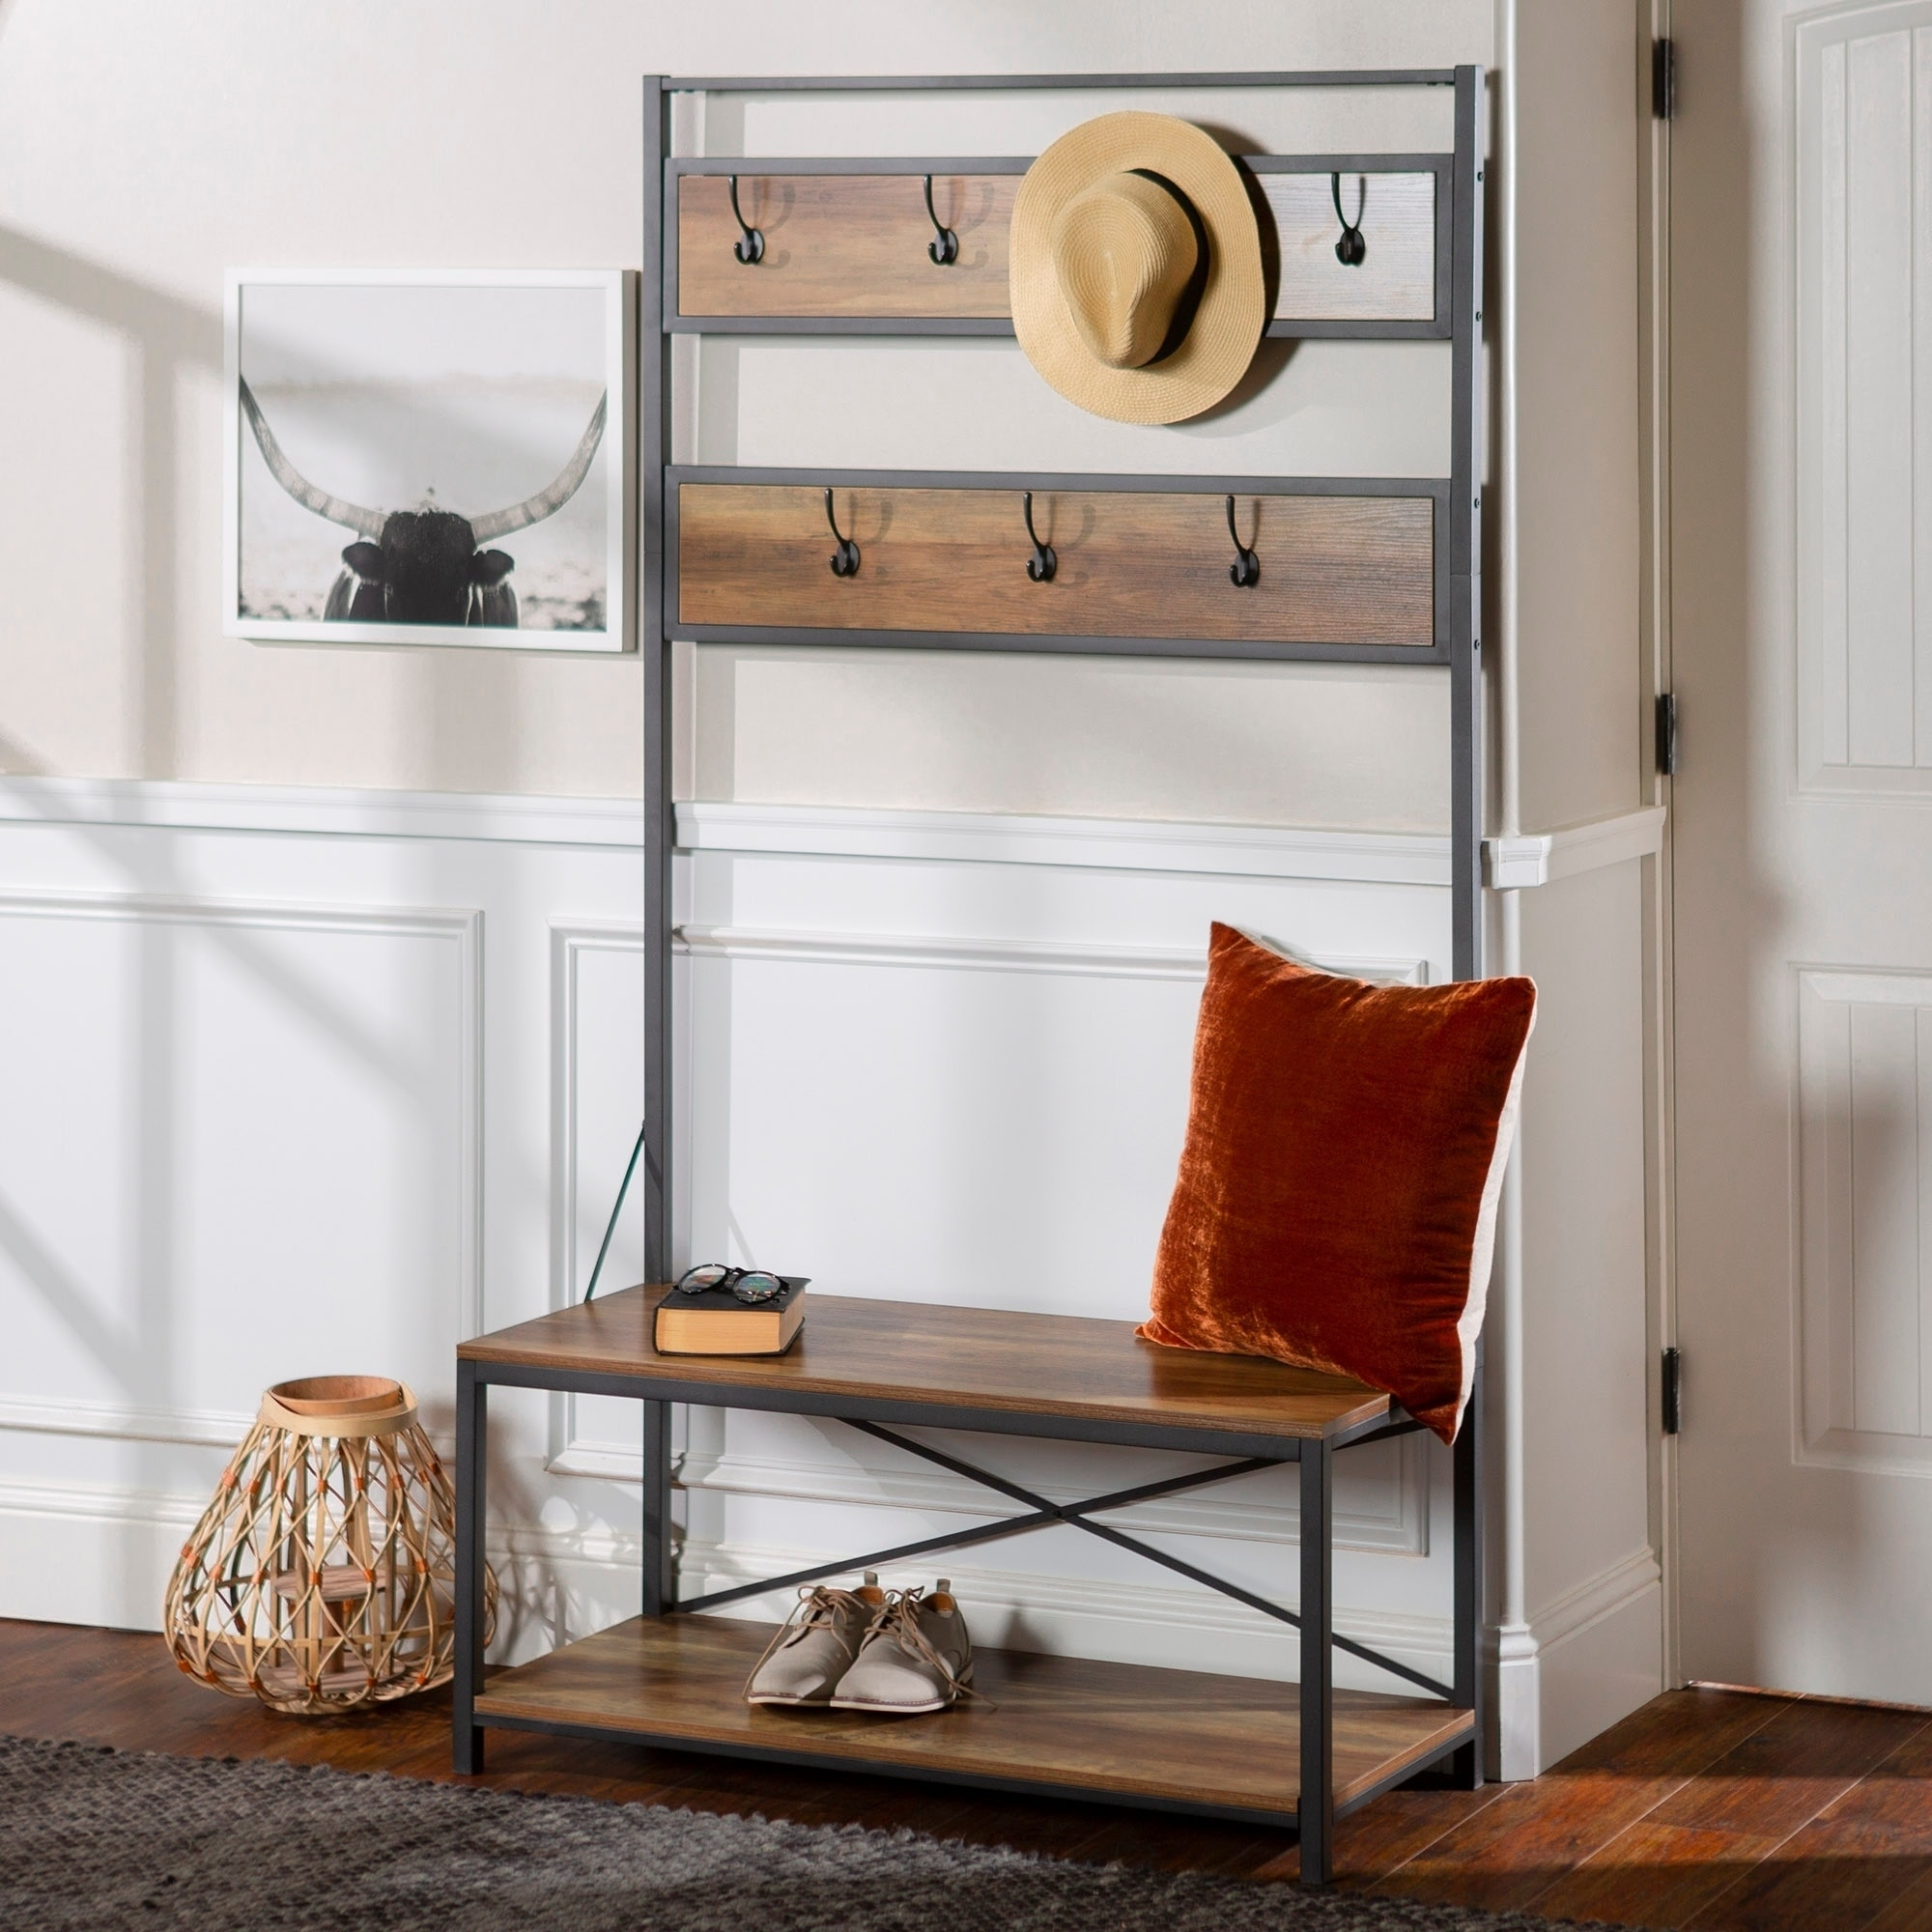 Shop carbon loft geller 72 inch industrial metal and wood hall tree free shipping today overstock com 20616607